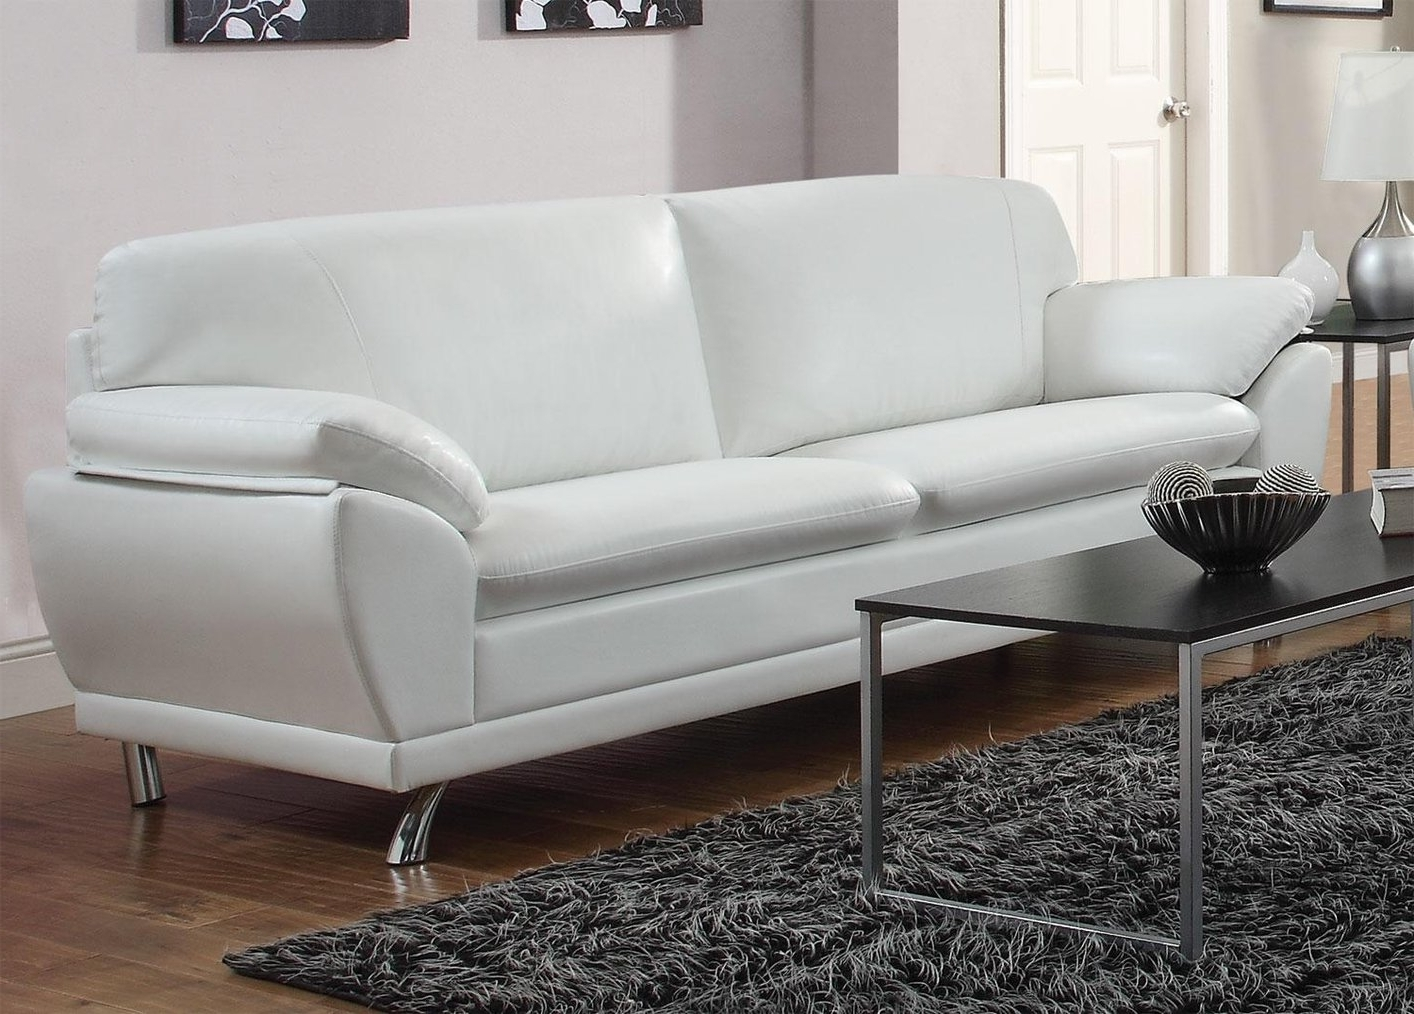 Newest White Leather Sofas Inside How To Keep Your White Leather Sofa Clean – Pickndecor (View 8 of 15)